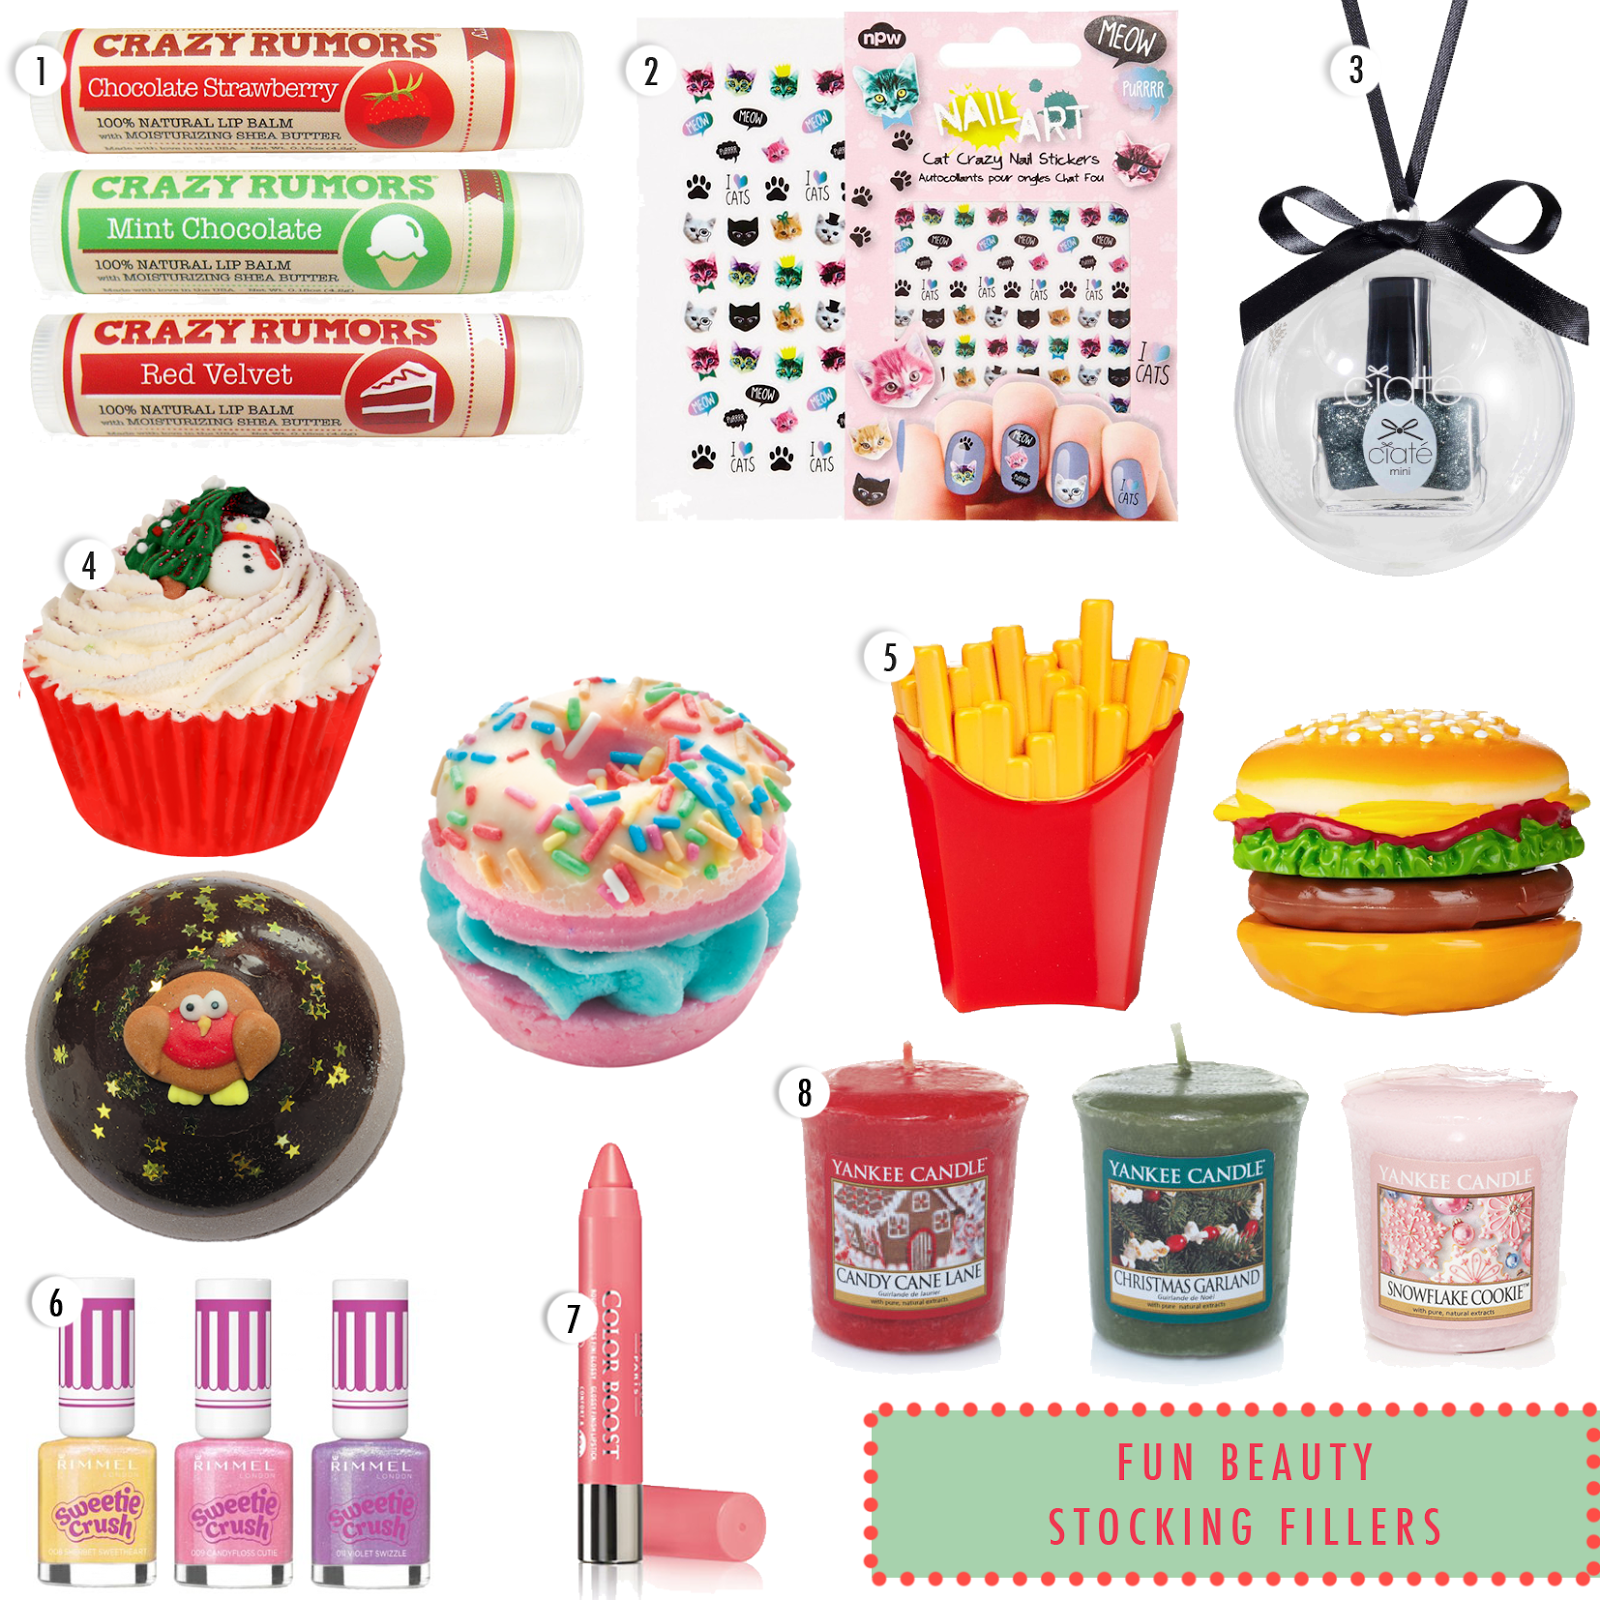 stocking fillers, beauty stocking fillers, christmas stocking fillers, christmas stocking stuffers